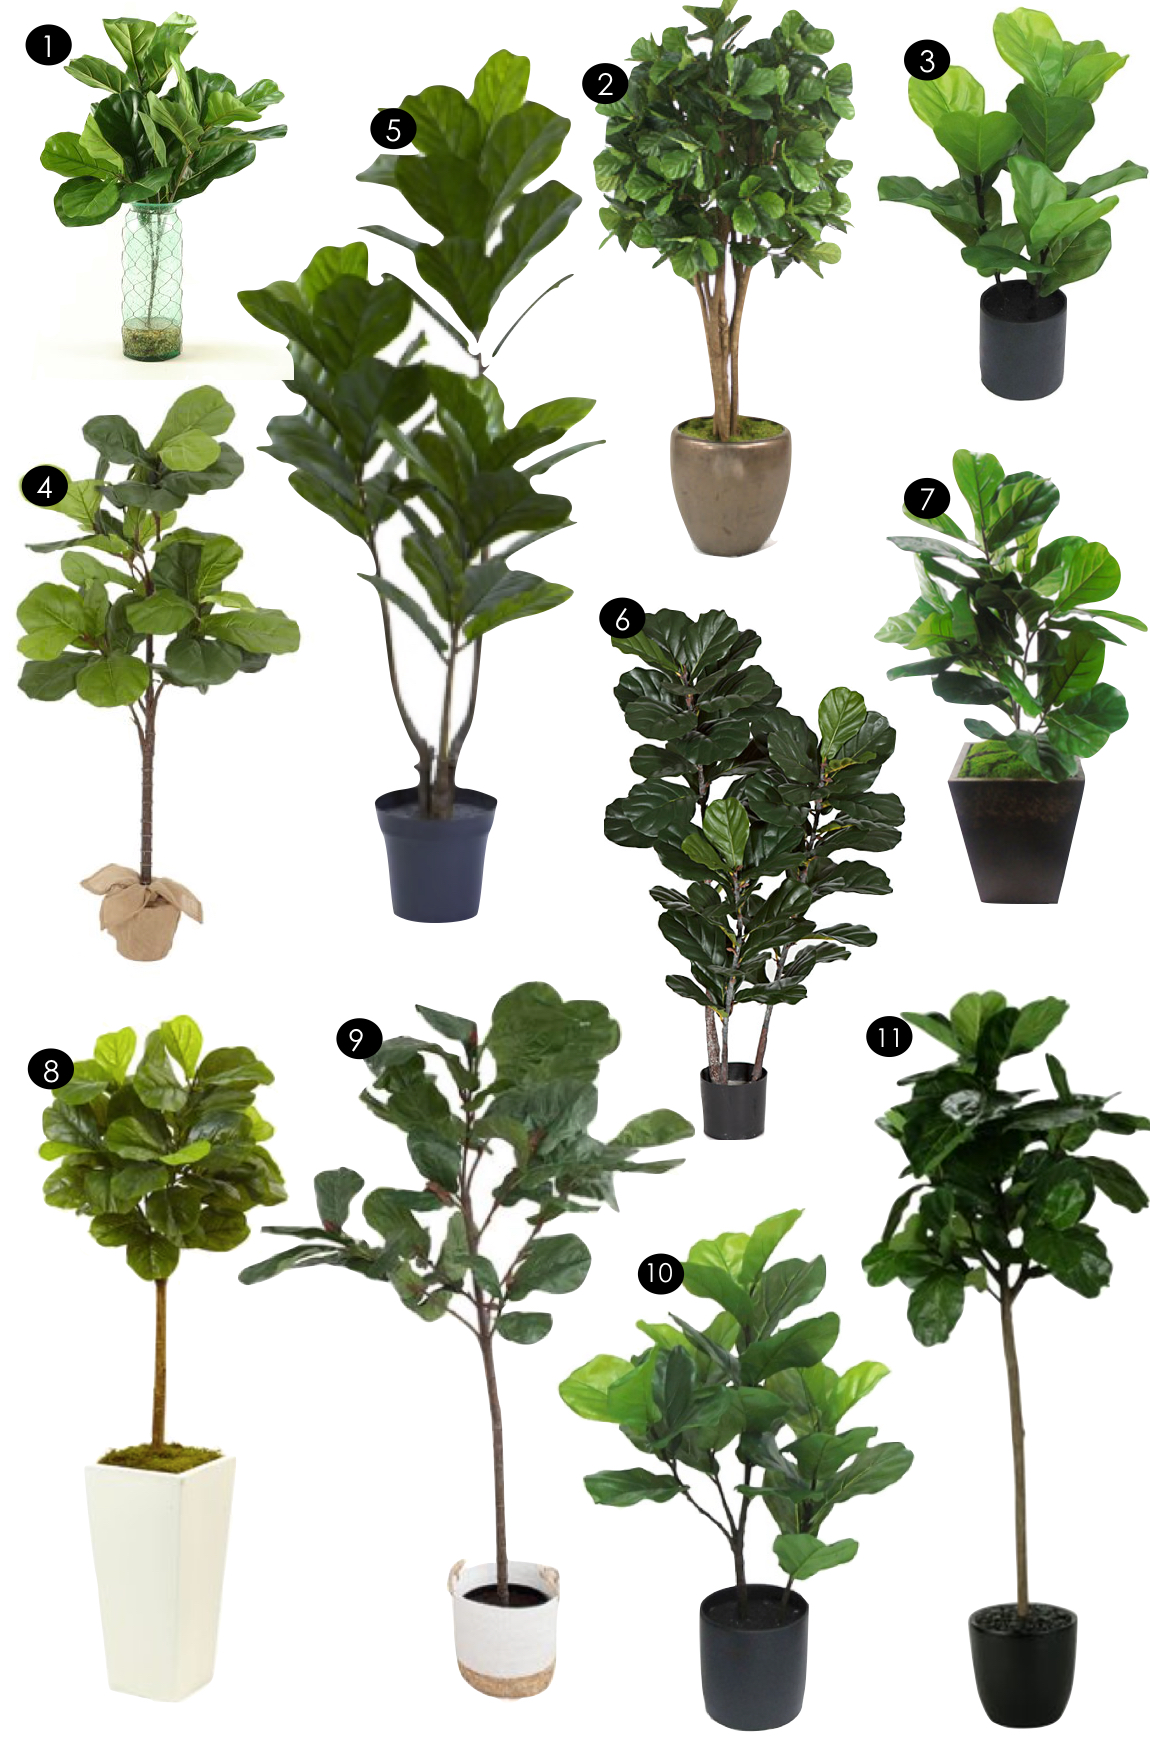 Fiddle Leaf Fig Tree Fiddle Leaf Fig Trees Kiki 39s List